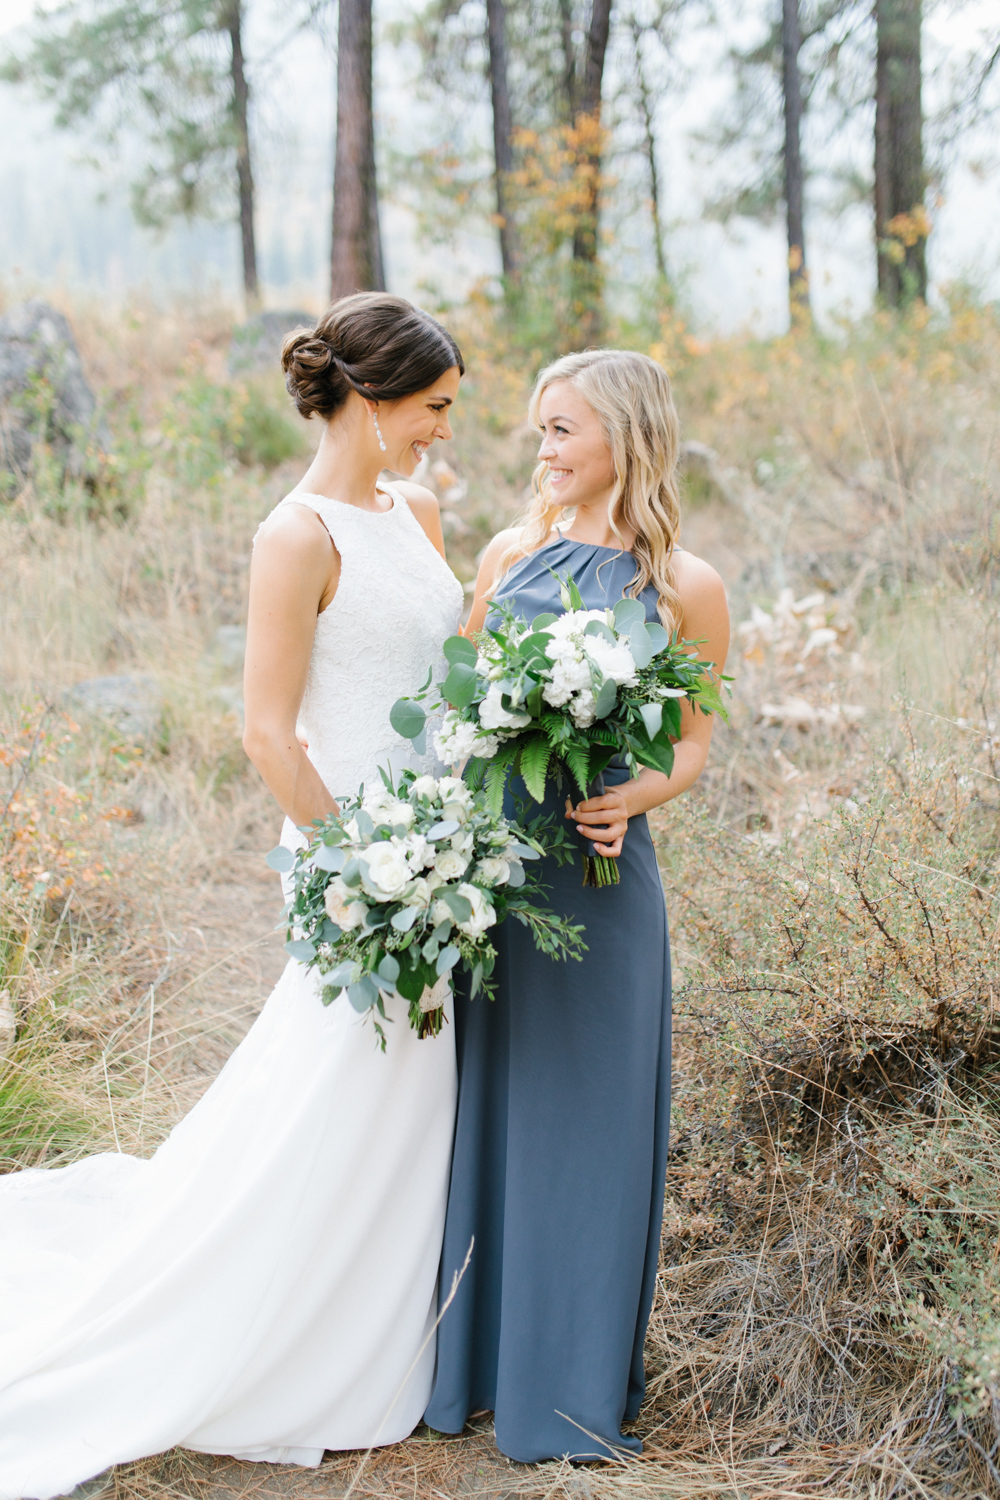 Grey and White Wedding in the Mountains of Leavenworth, Washington | Sleeping Lady | Classic and Timeless Wedding | VSCO | Bride with Bridesmaids | Grey Bridesmaids Dresses.jpg-2292.jpg